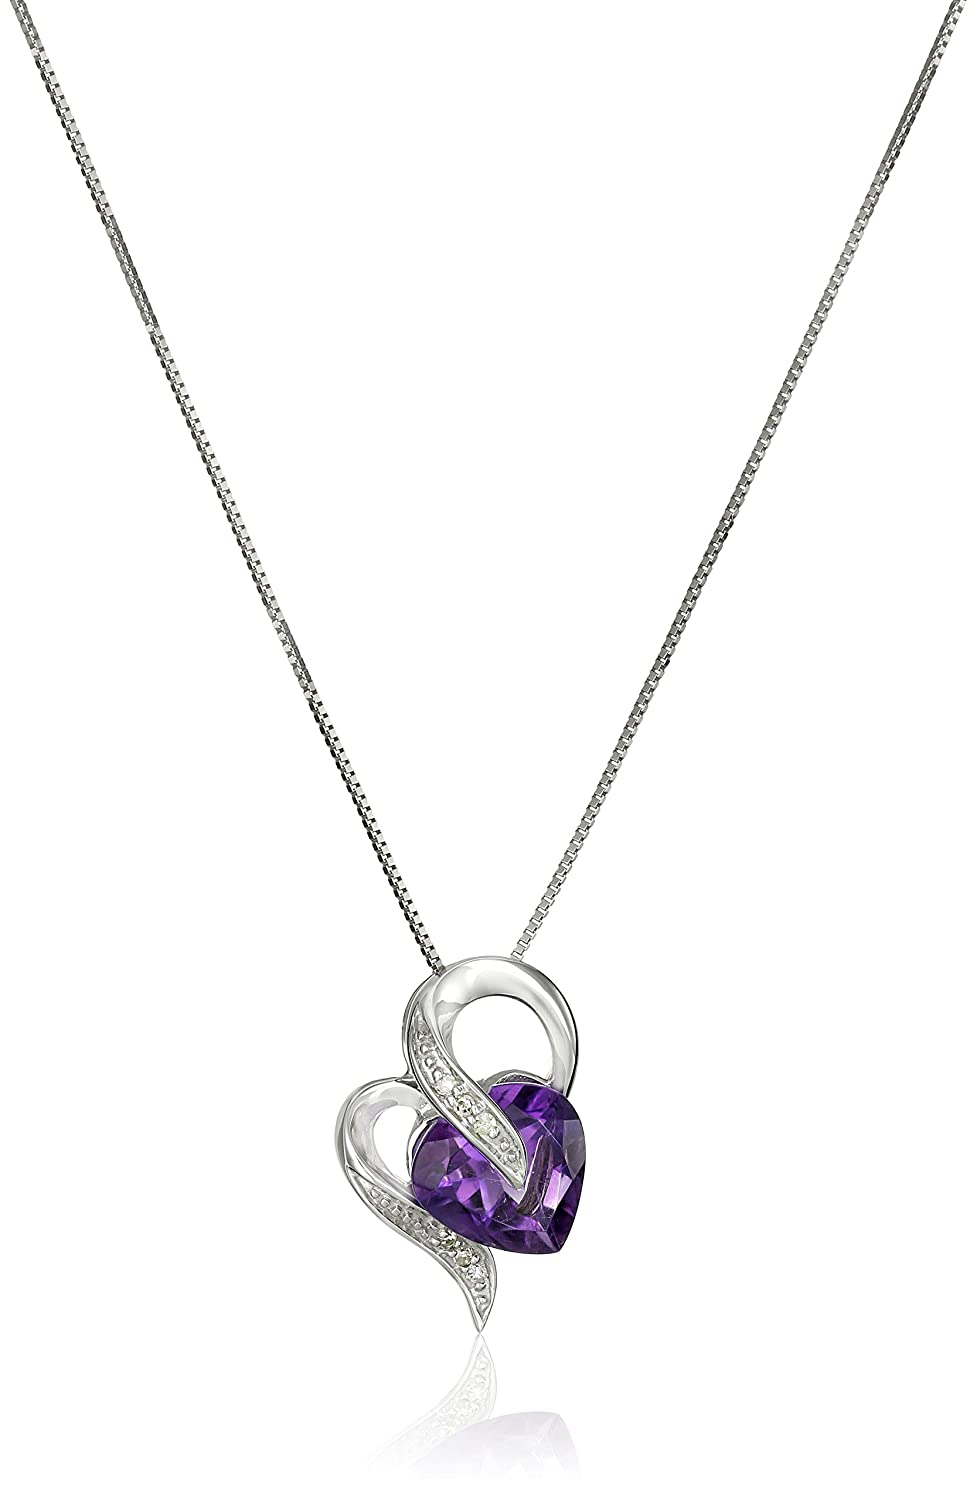 Amazon 10k white gold amethyst and diamond accent heart shape amazon 10k white gold amethyst and diamond accent heart shape pendant necklace 18 jewelry mozeypictures Image collections